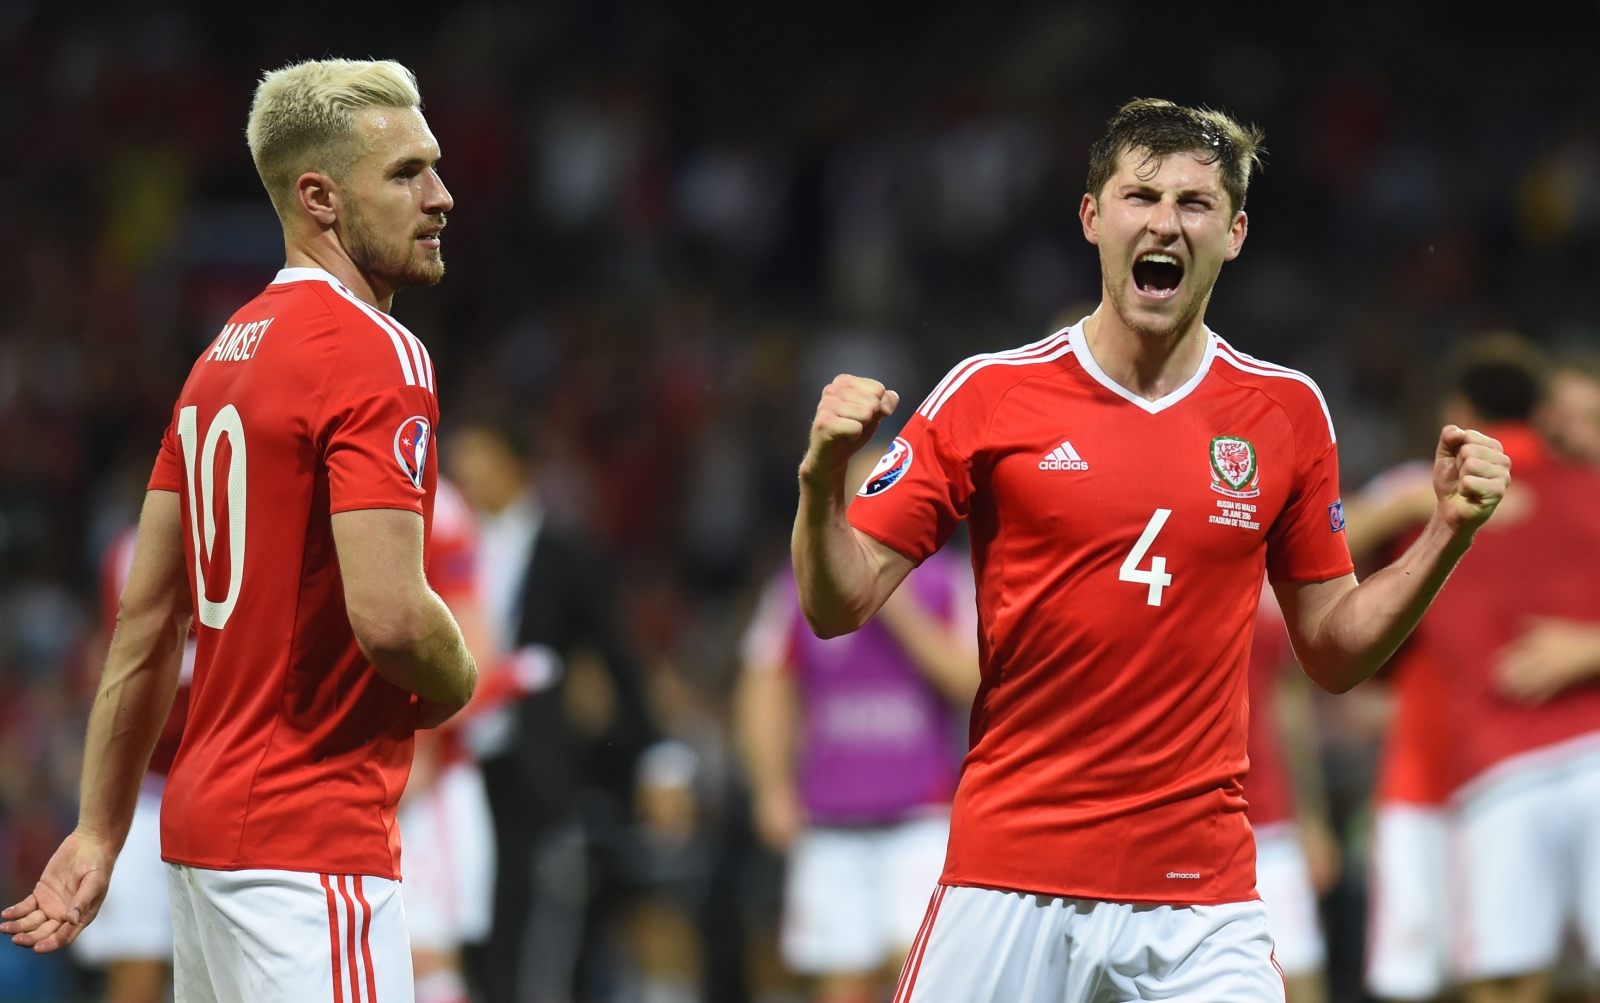 Aaron Ramsey and Ben Davies